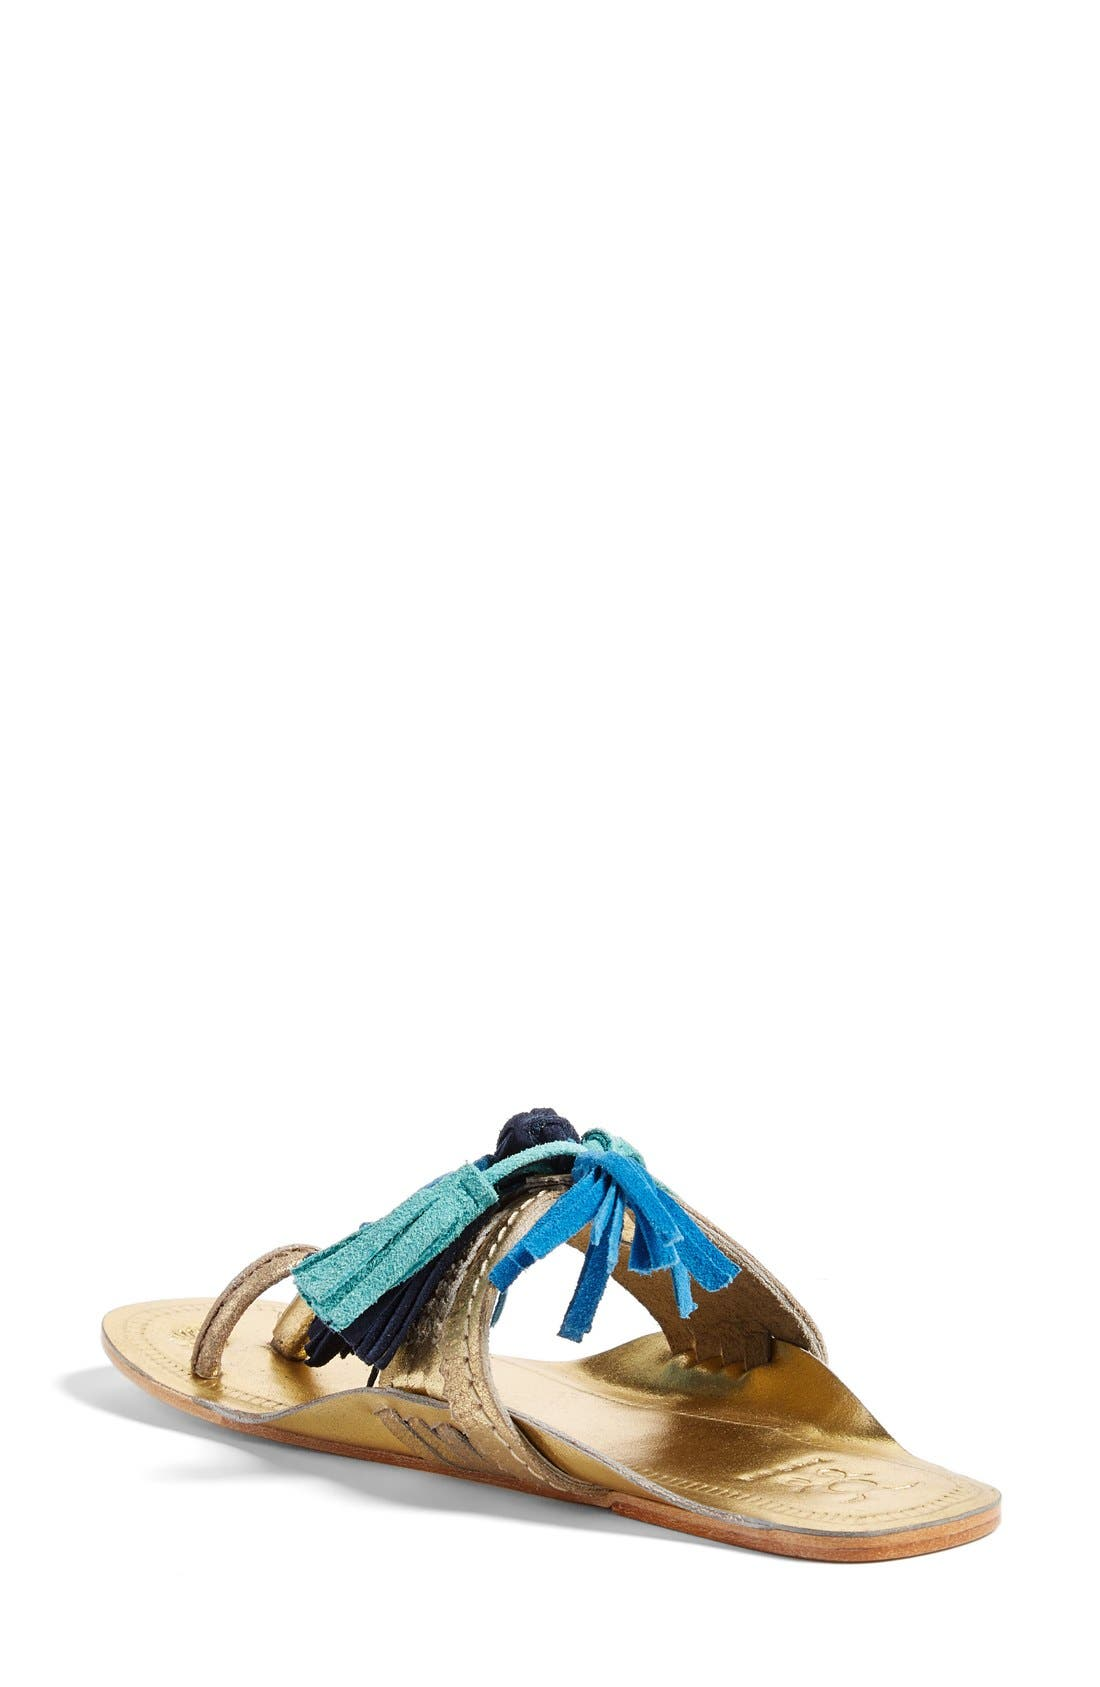 Alternate Image 2  - Figue Scaramouch Tassel Sandal (Women)